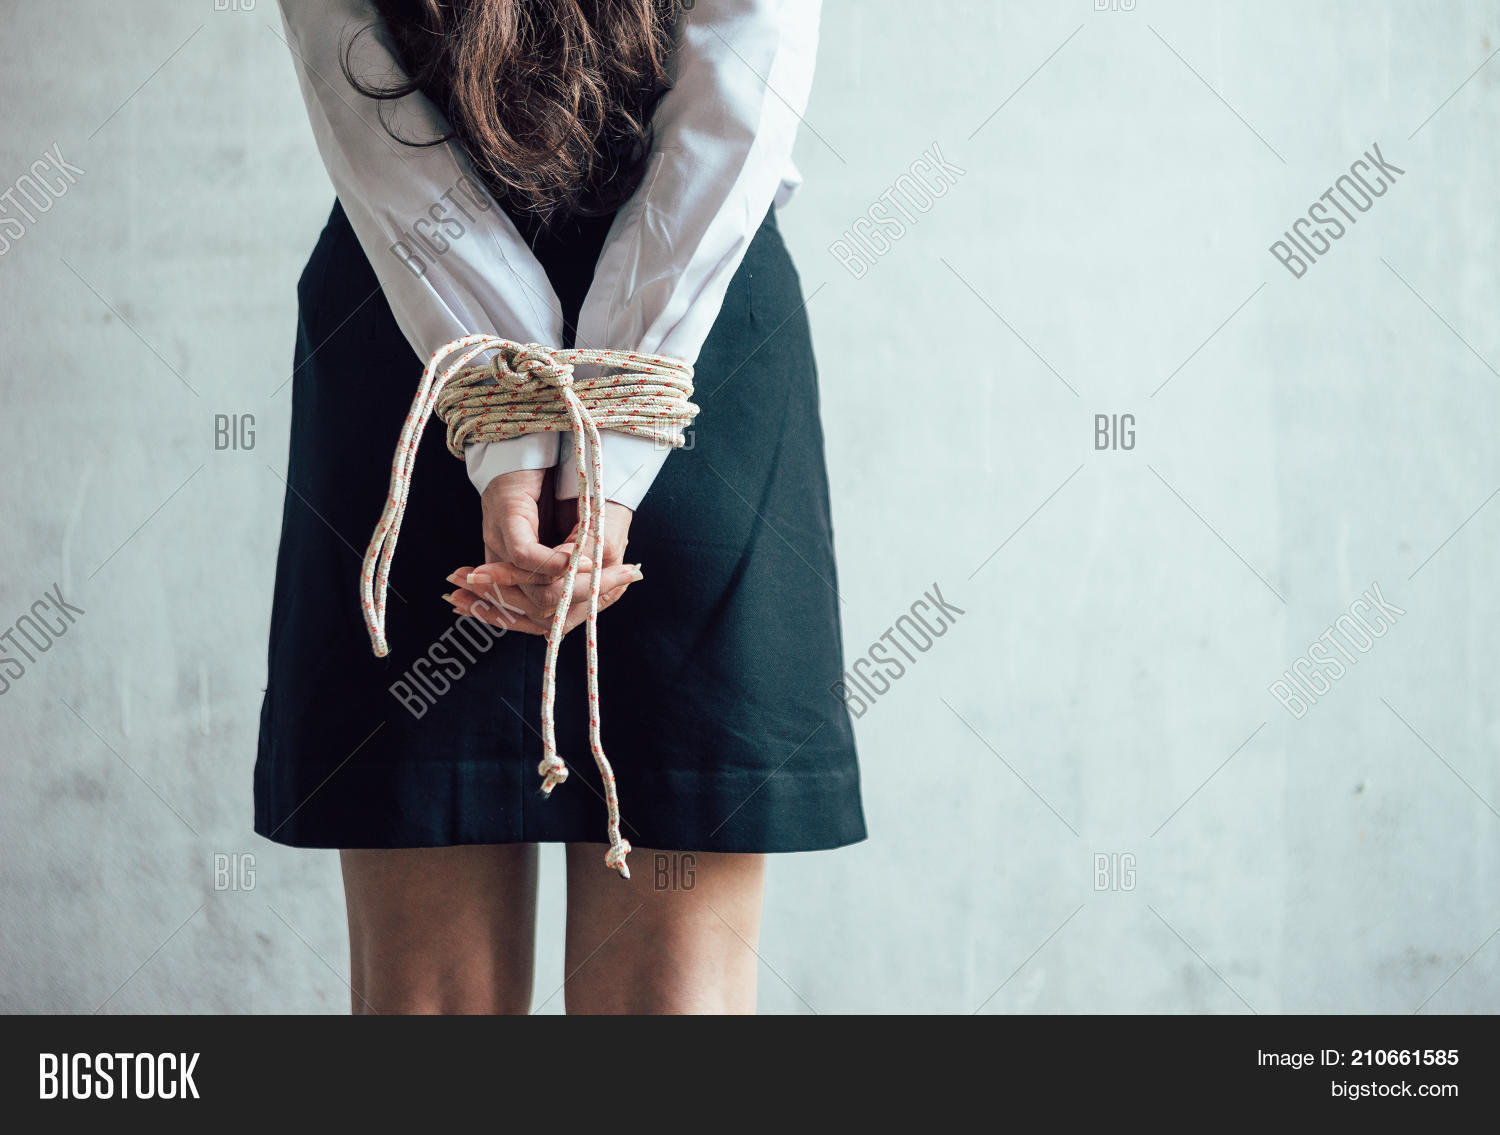 Bound to pole with rope